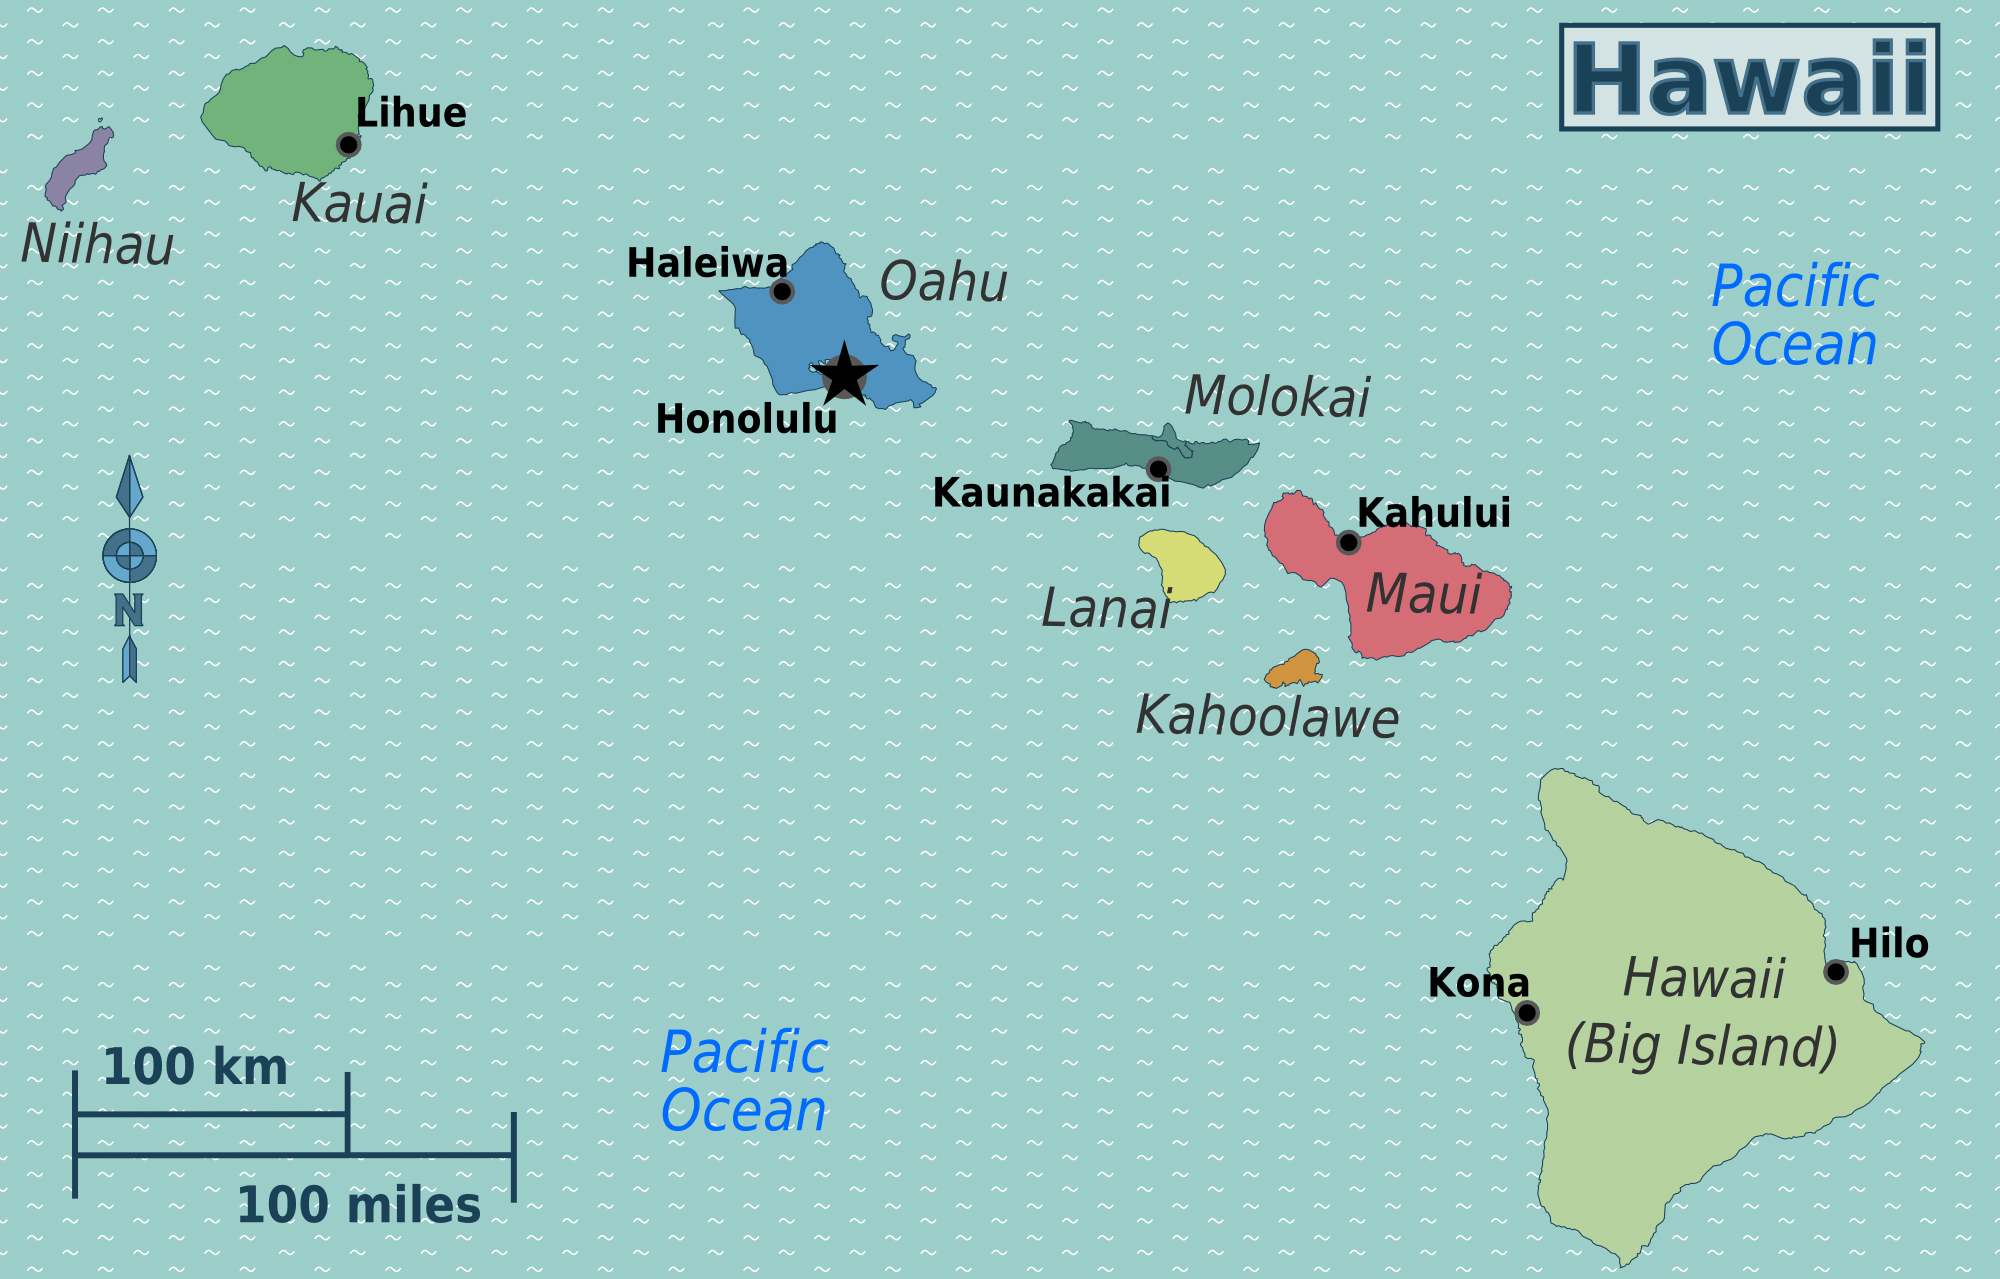 Large regions map of Hawaii | Hawaii state | USA | Maps of the USA ...